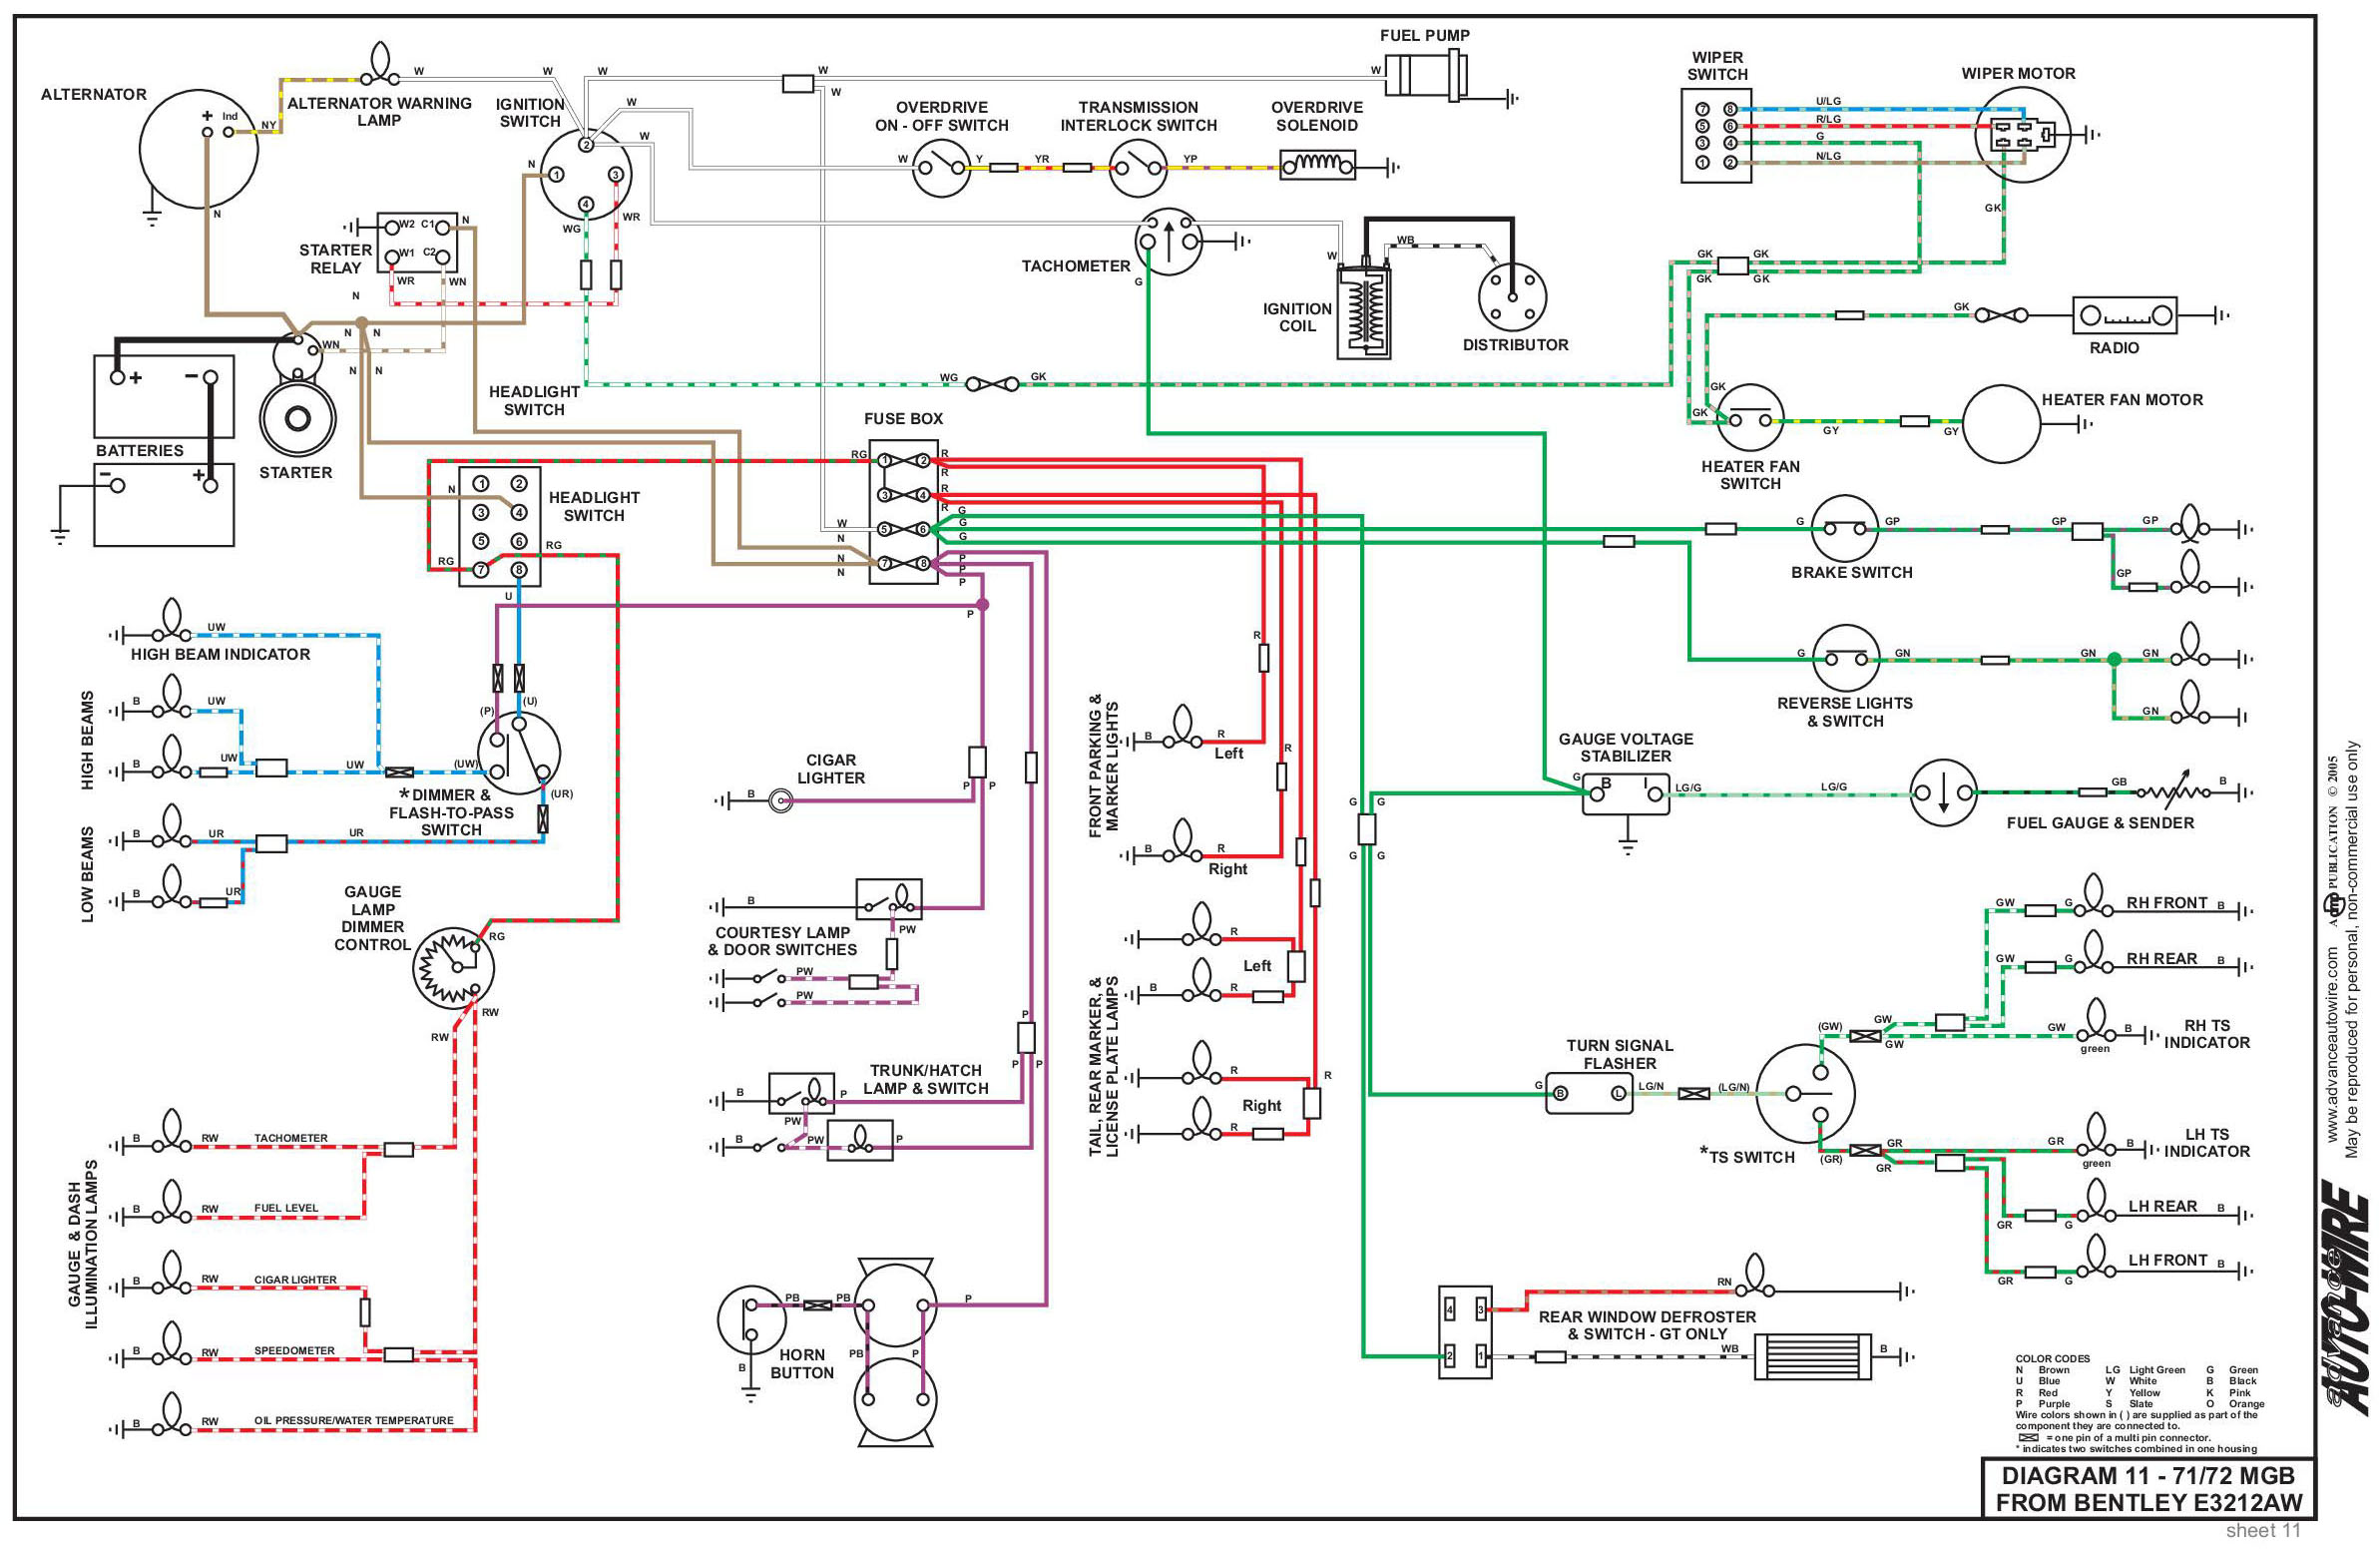 71 mgb diagram schematics online electronic ignition coil wiring diagram flamethrower coil wiring (are my